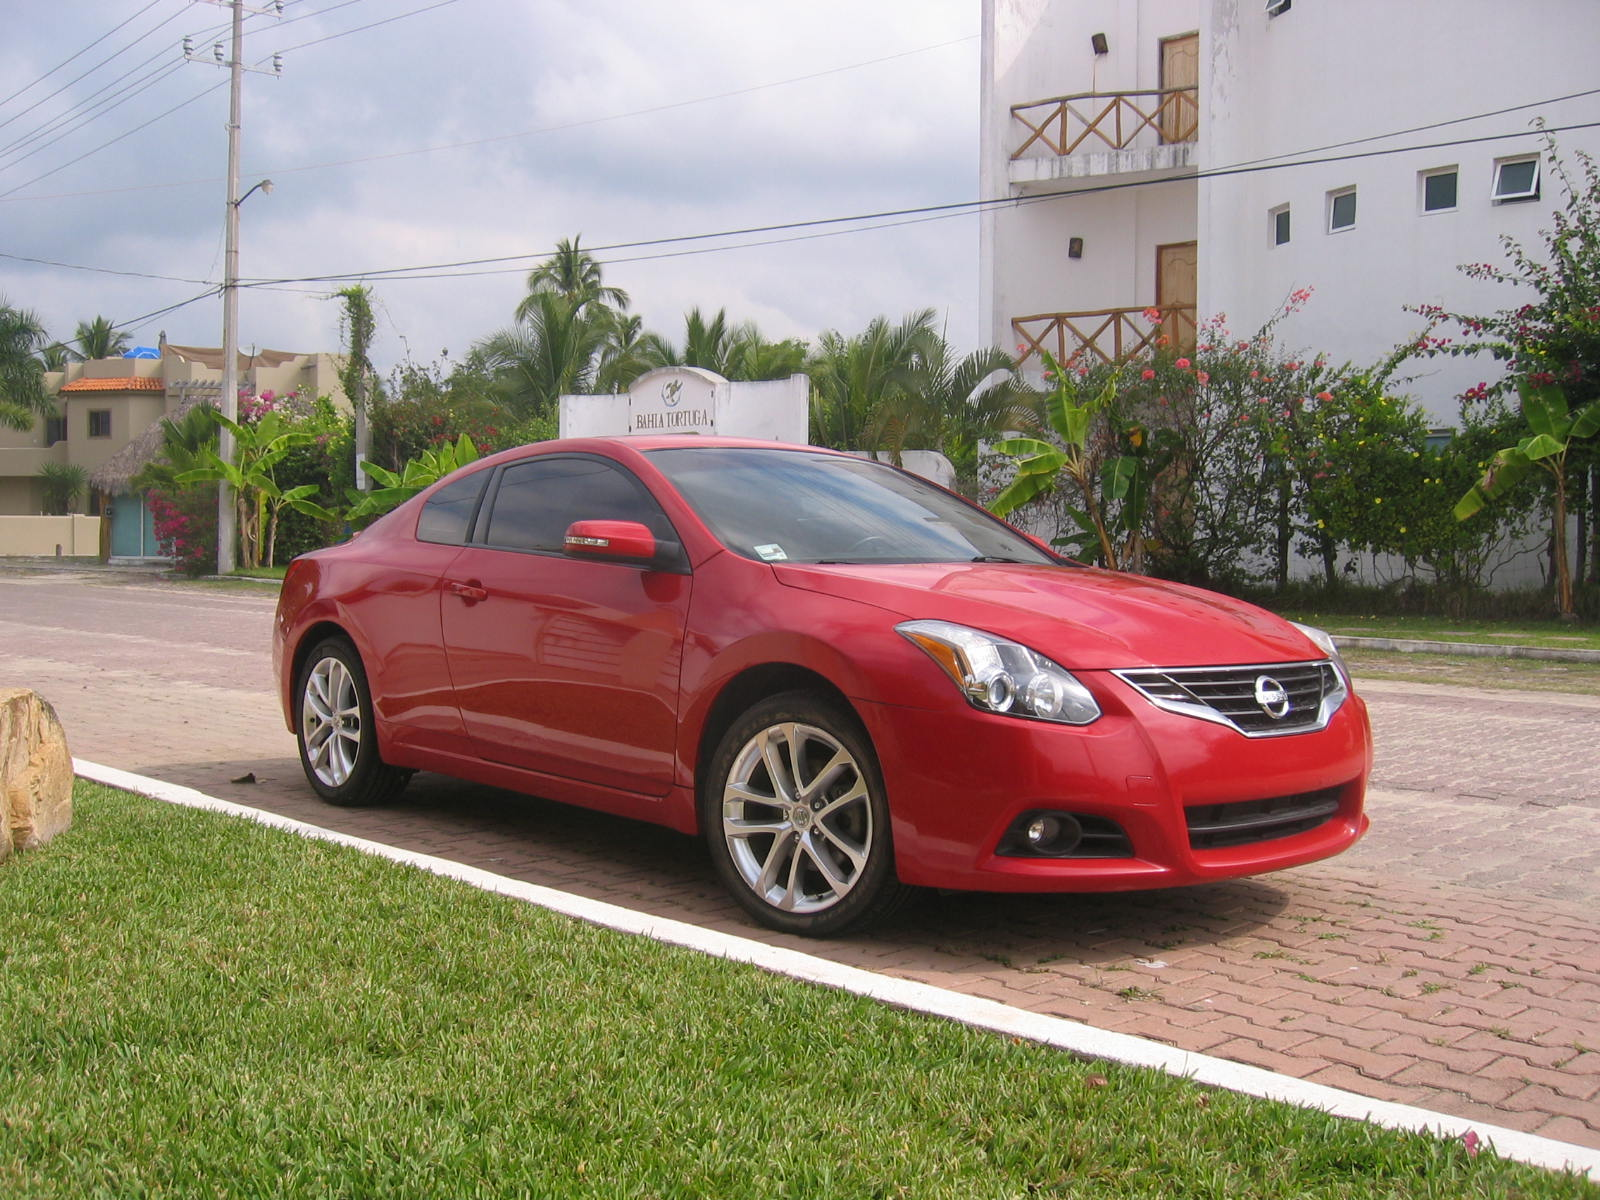 Red 2010 Nissan Altima for sale